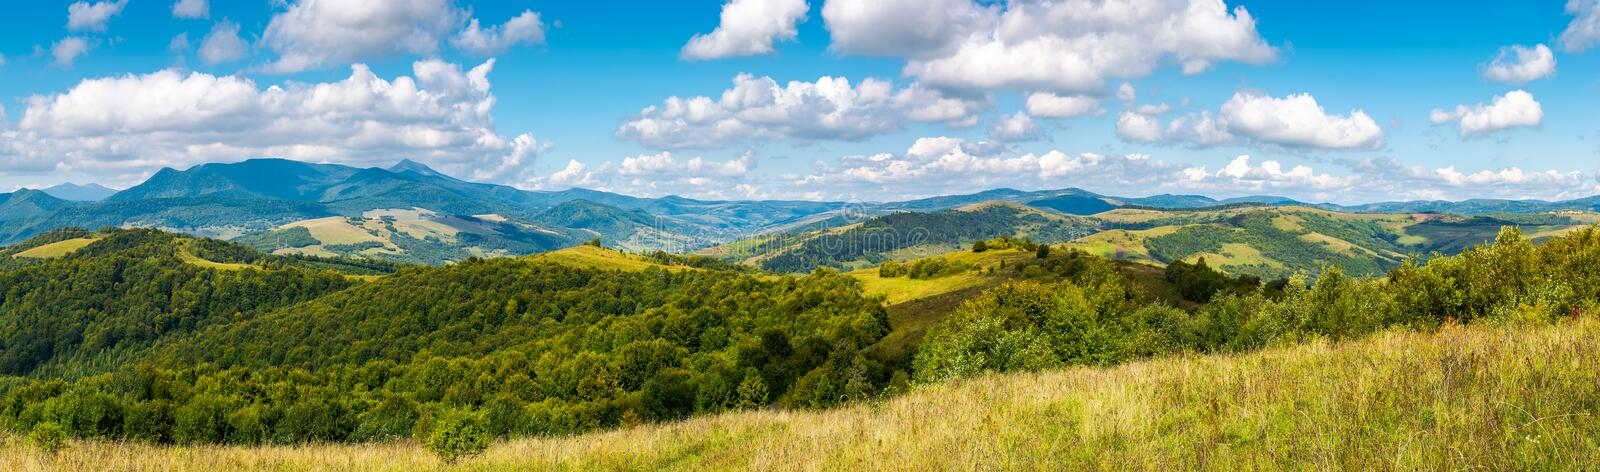 Grassy meadows and forested hills in early autumn royalty free stock photo